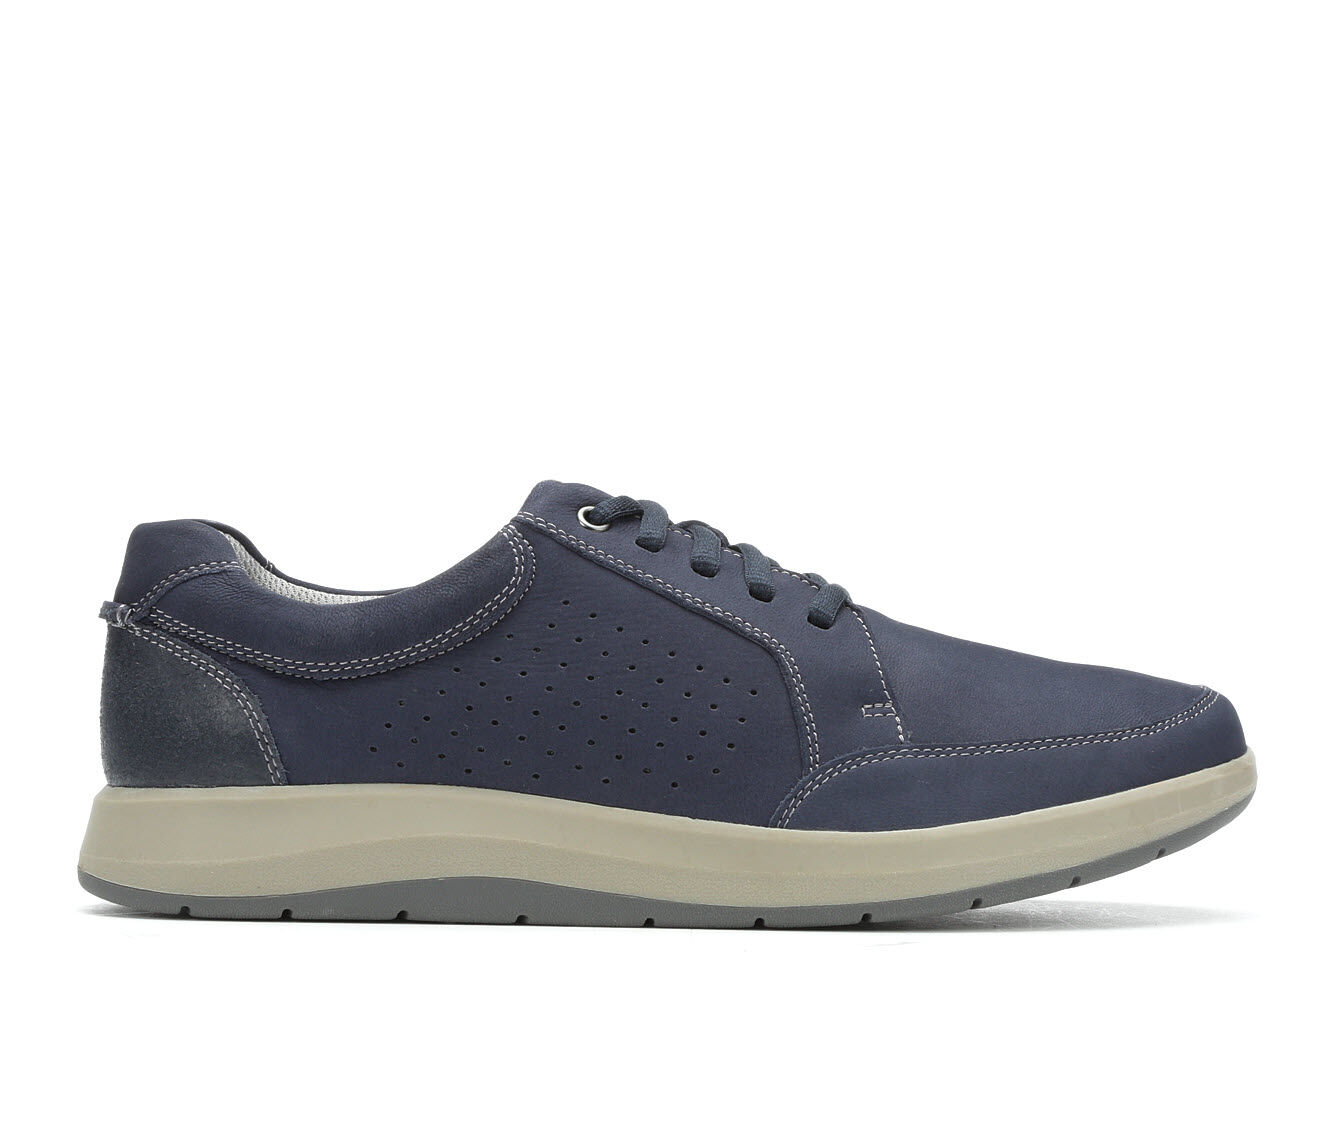 Price Down Men's Clarks Shoda Free Oxfords Navy Nubuck